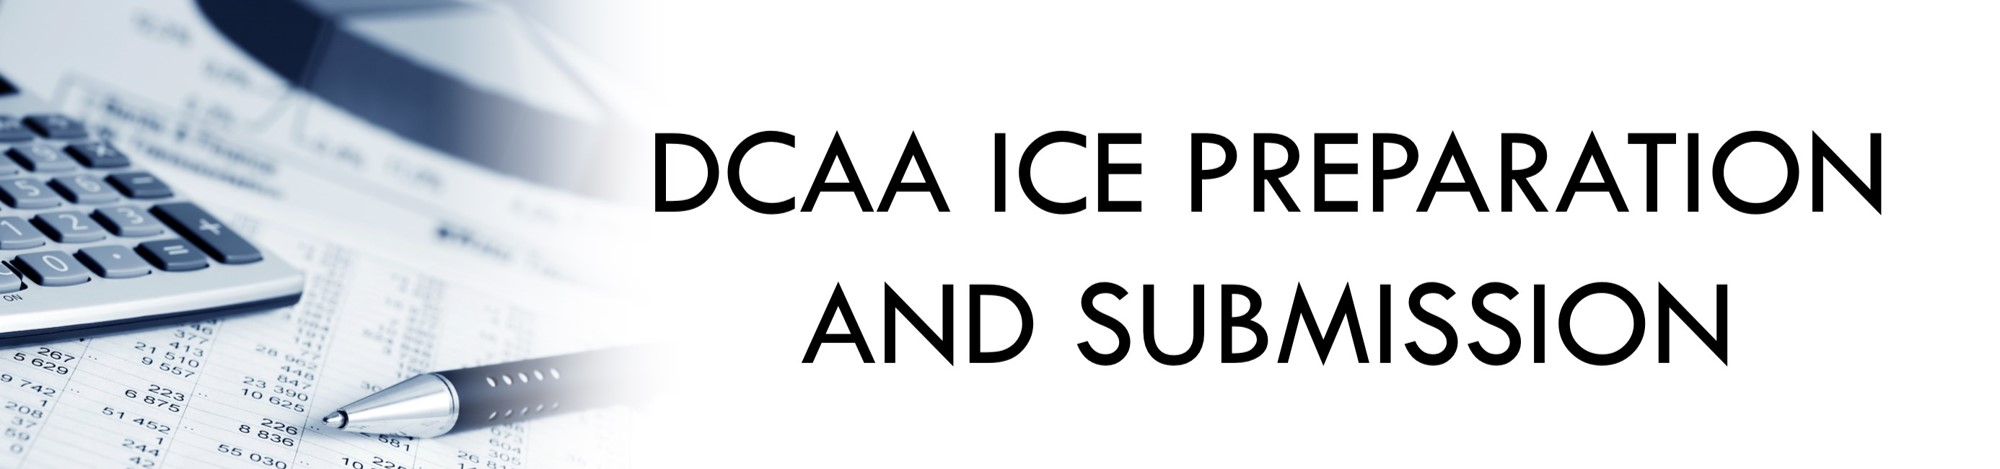 DCAA ICE Submission